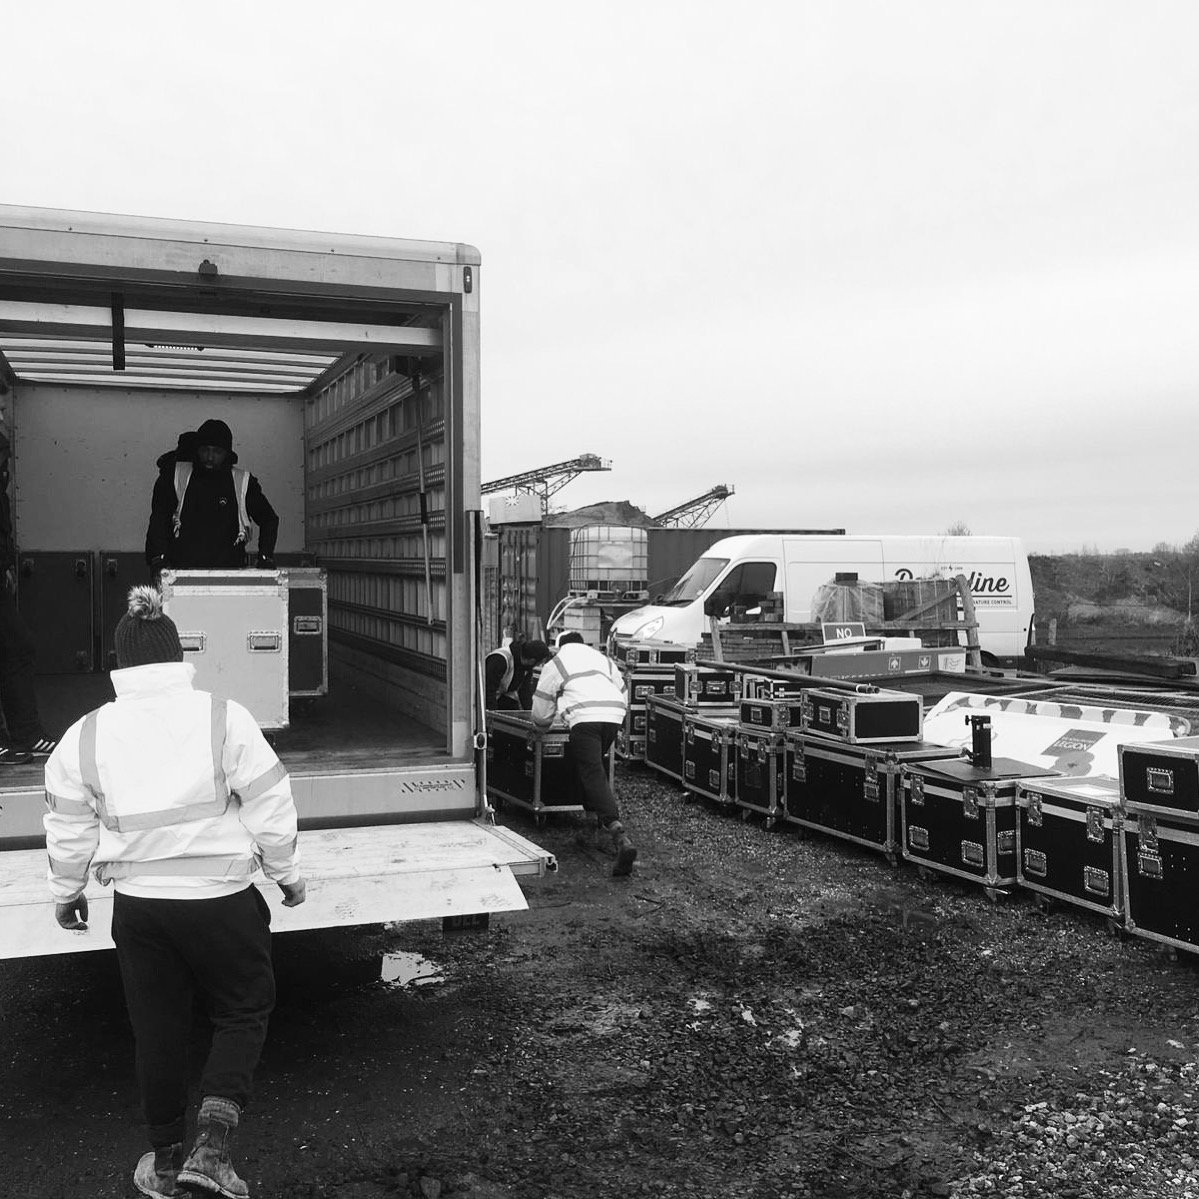 ...and we're off. Today we are starting our load in for Illuminated Arboretum with @TheColorProject at @Nat_Mem_Arb. Come down through December to see some of its memorials 'shown in another light' #EOL #Eventprofs https://tinyurl.com/yaqgf798